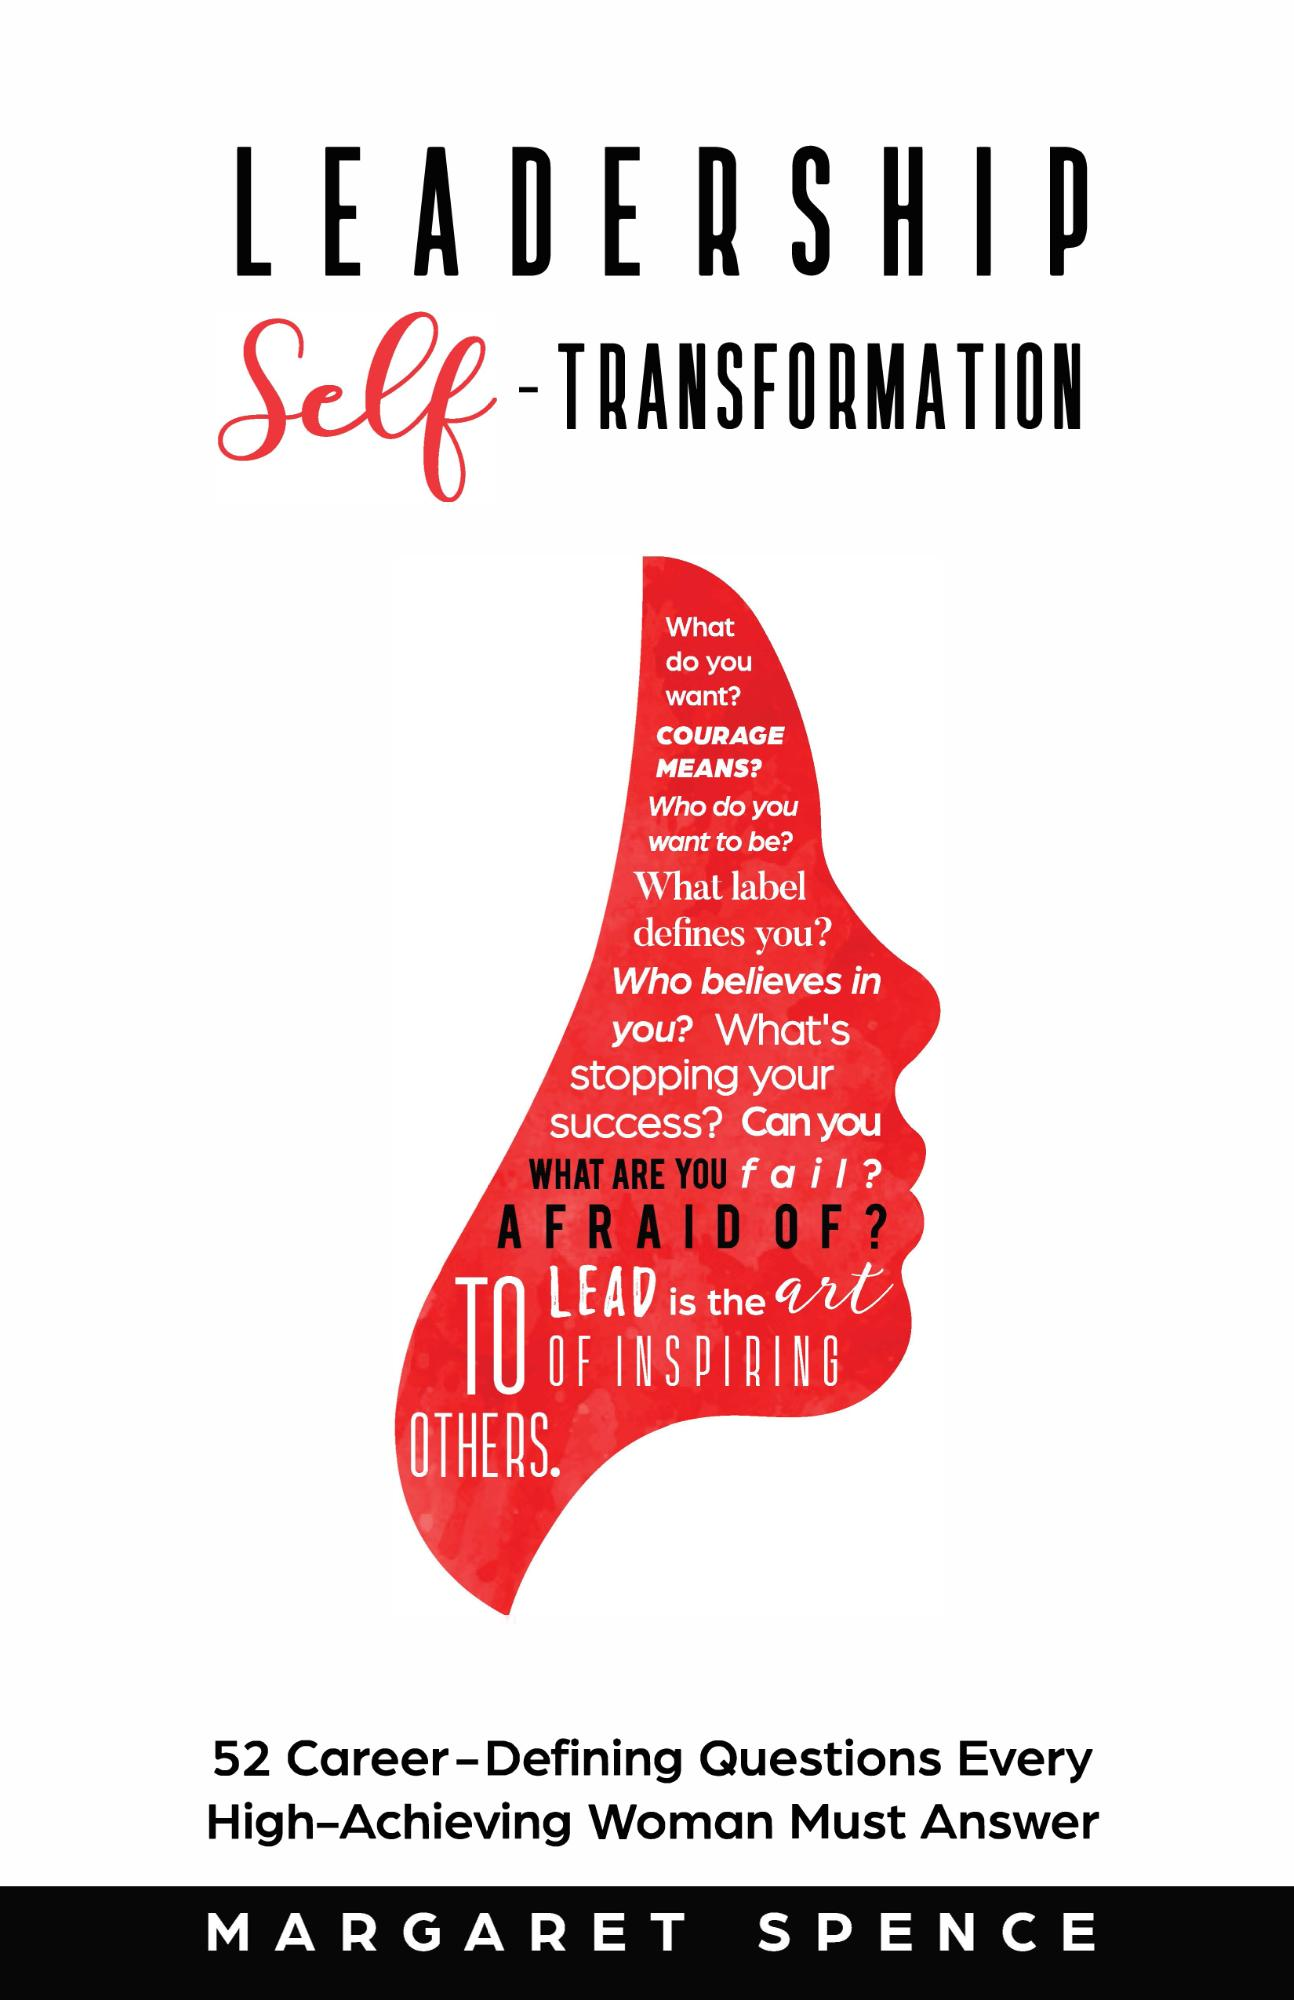 Leadership Self-Transformation: 52 Career Defining Questions For Women